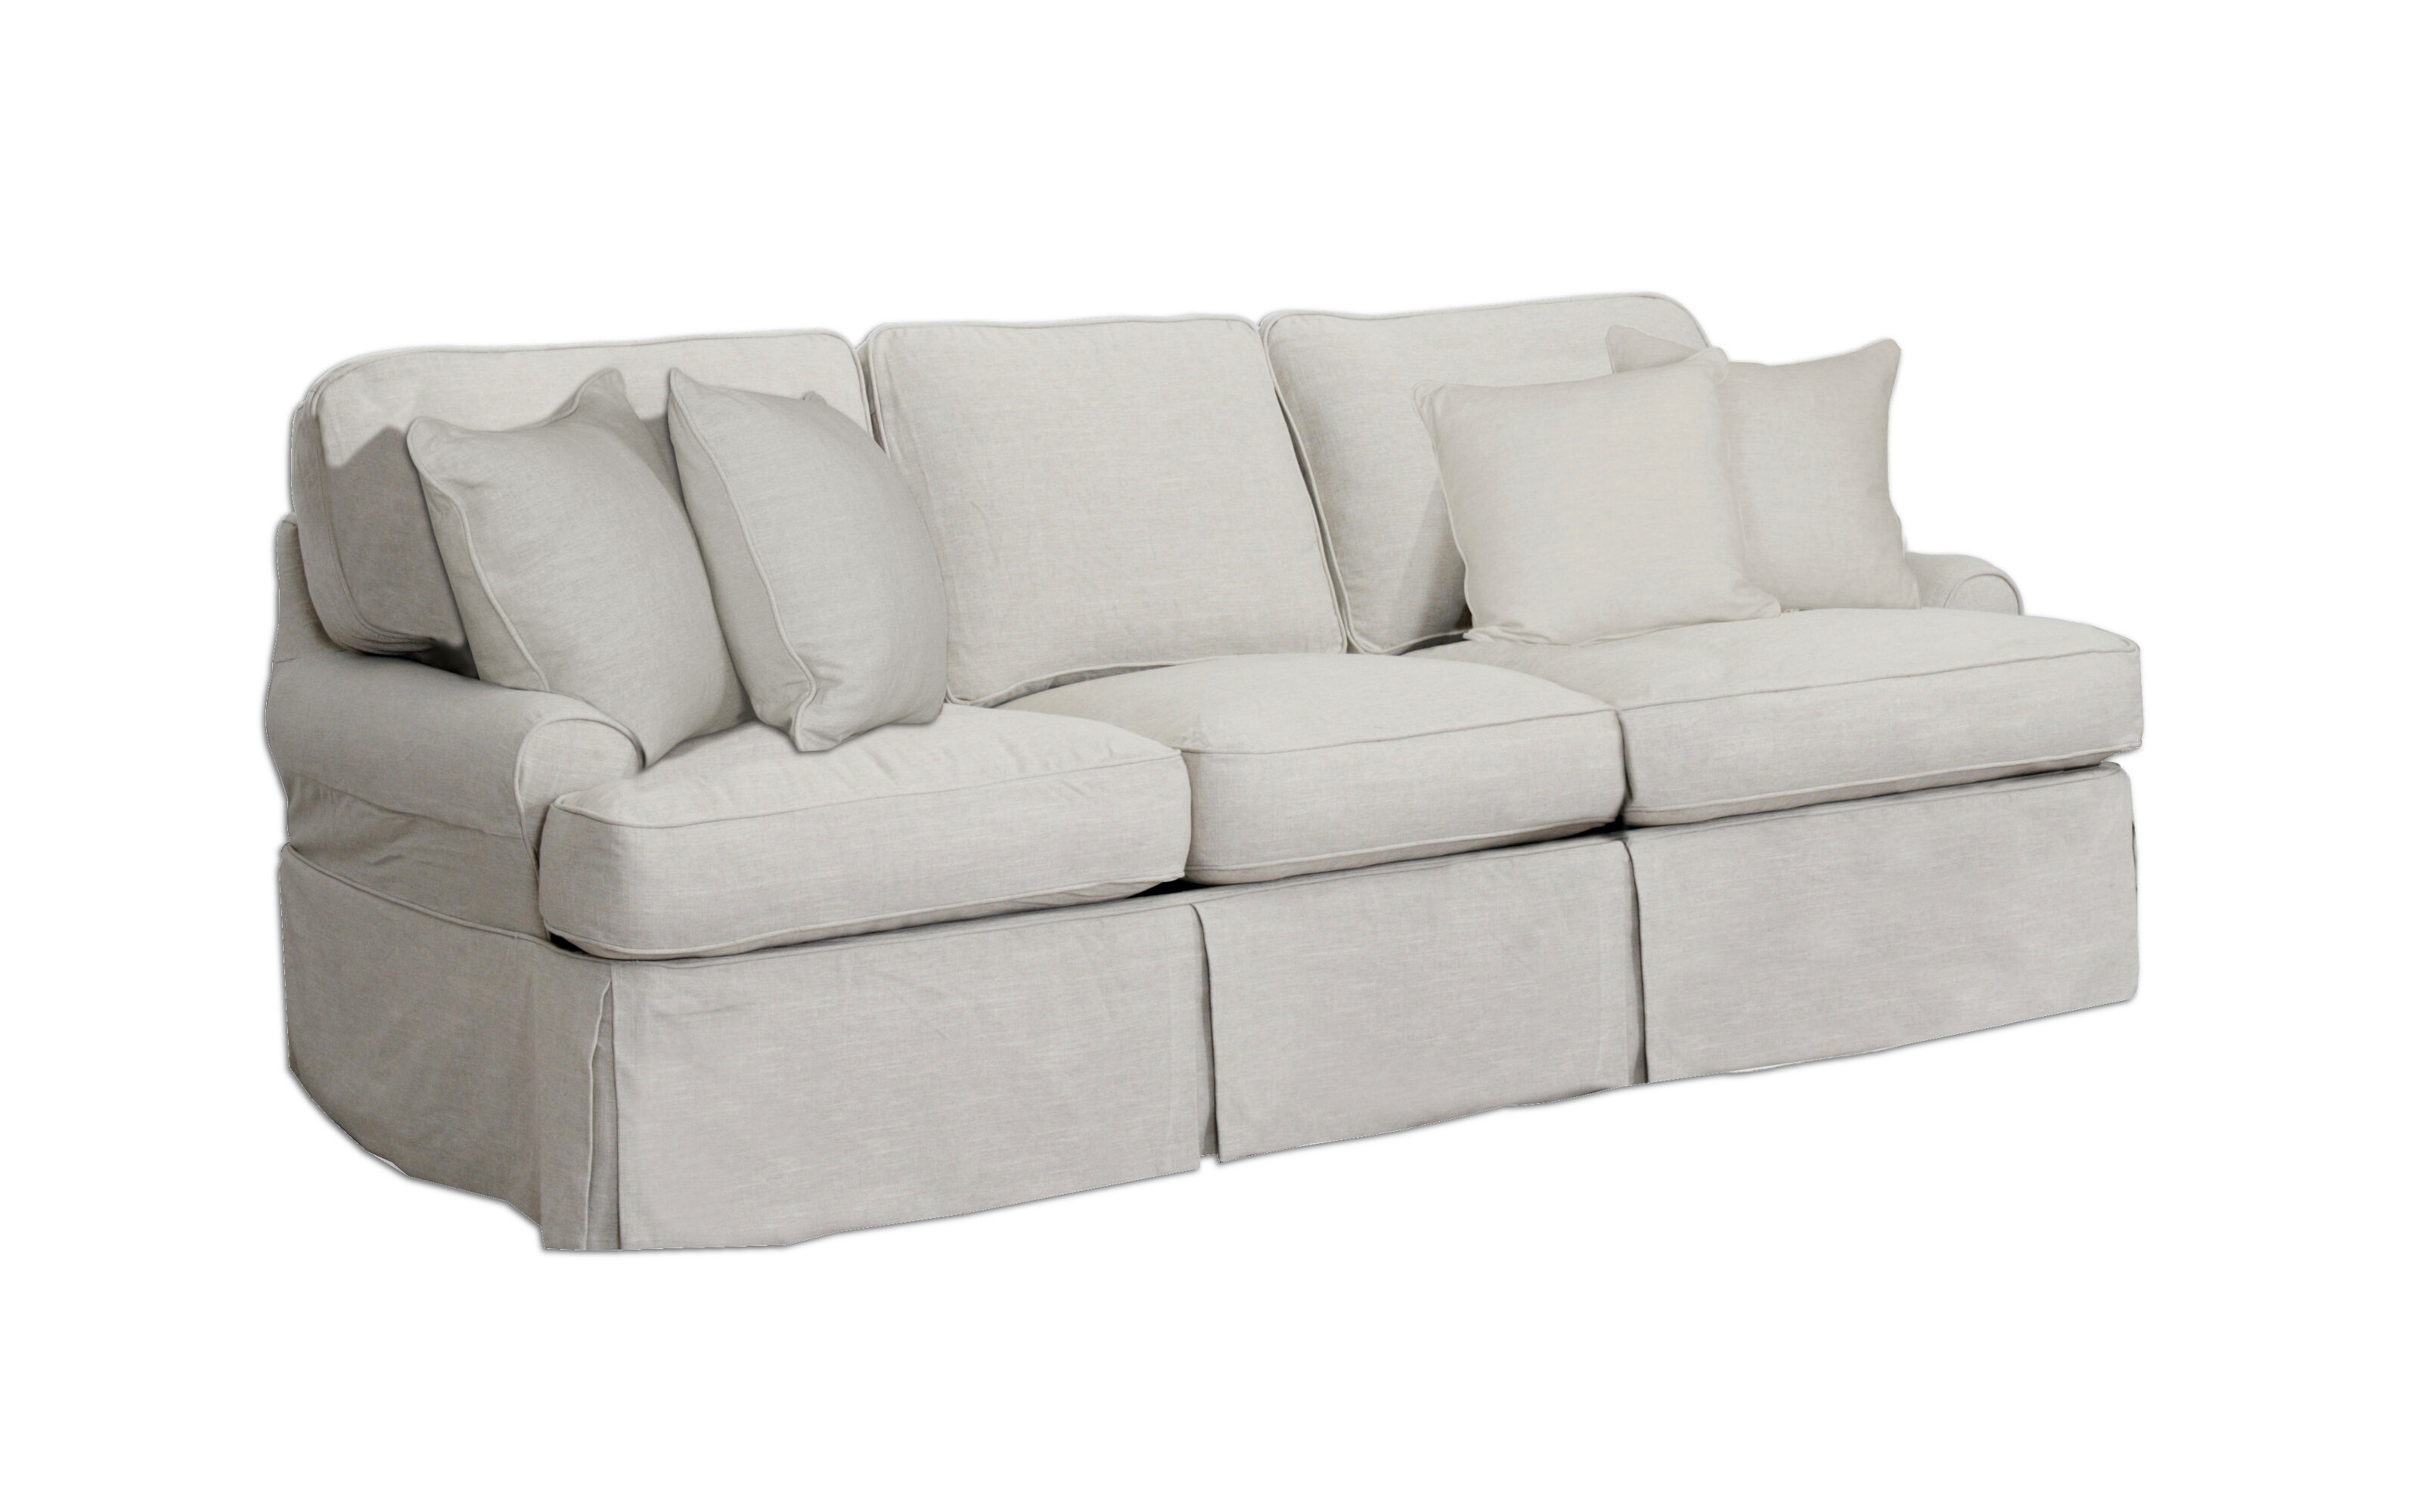 Callie T Cushion Sofa Slipcover